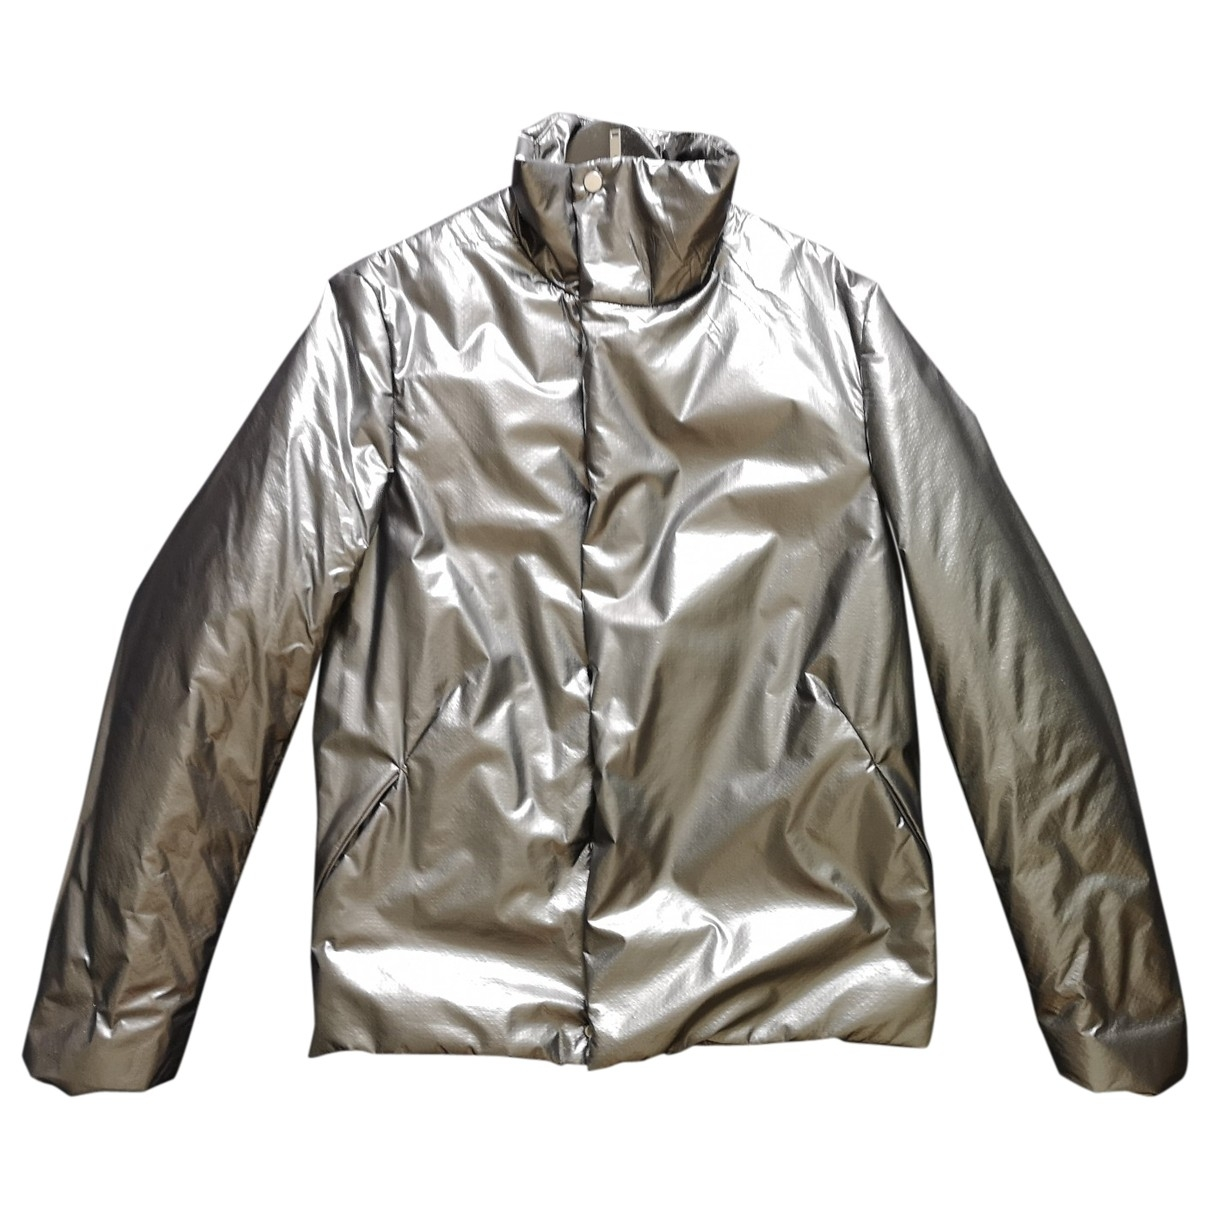 Cos \N Silver jacket  for Men S International